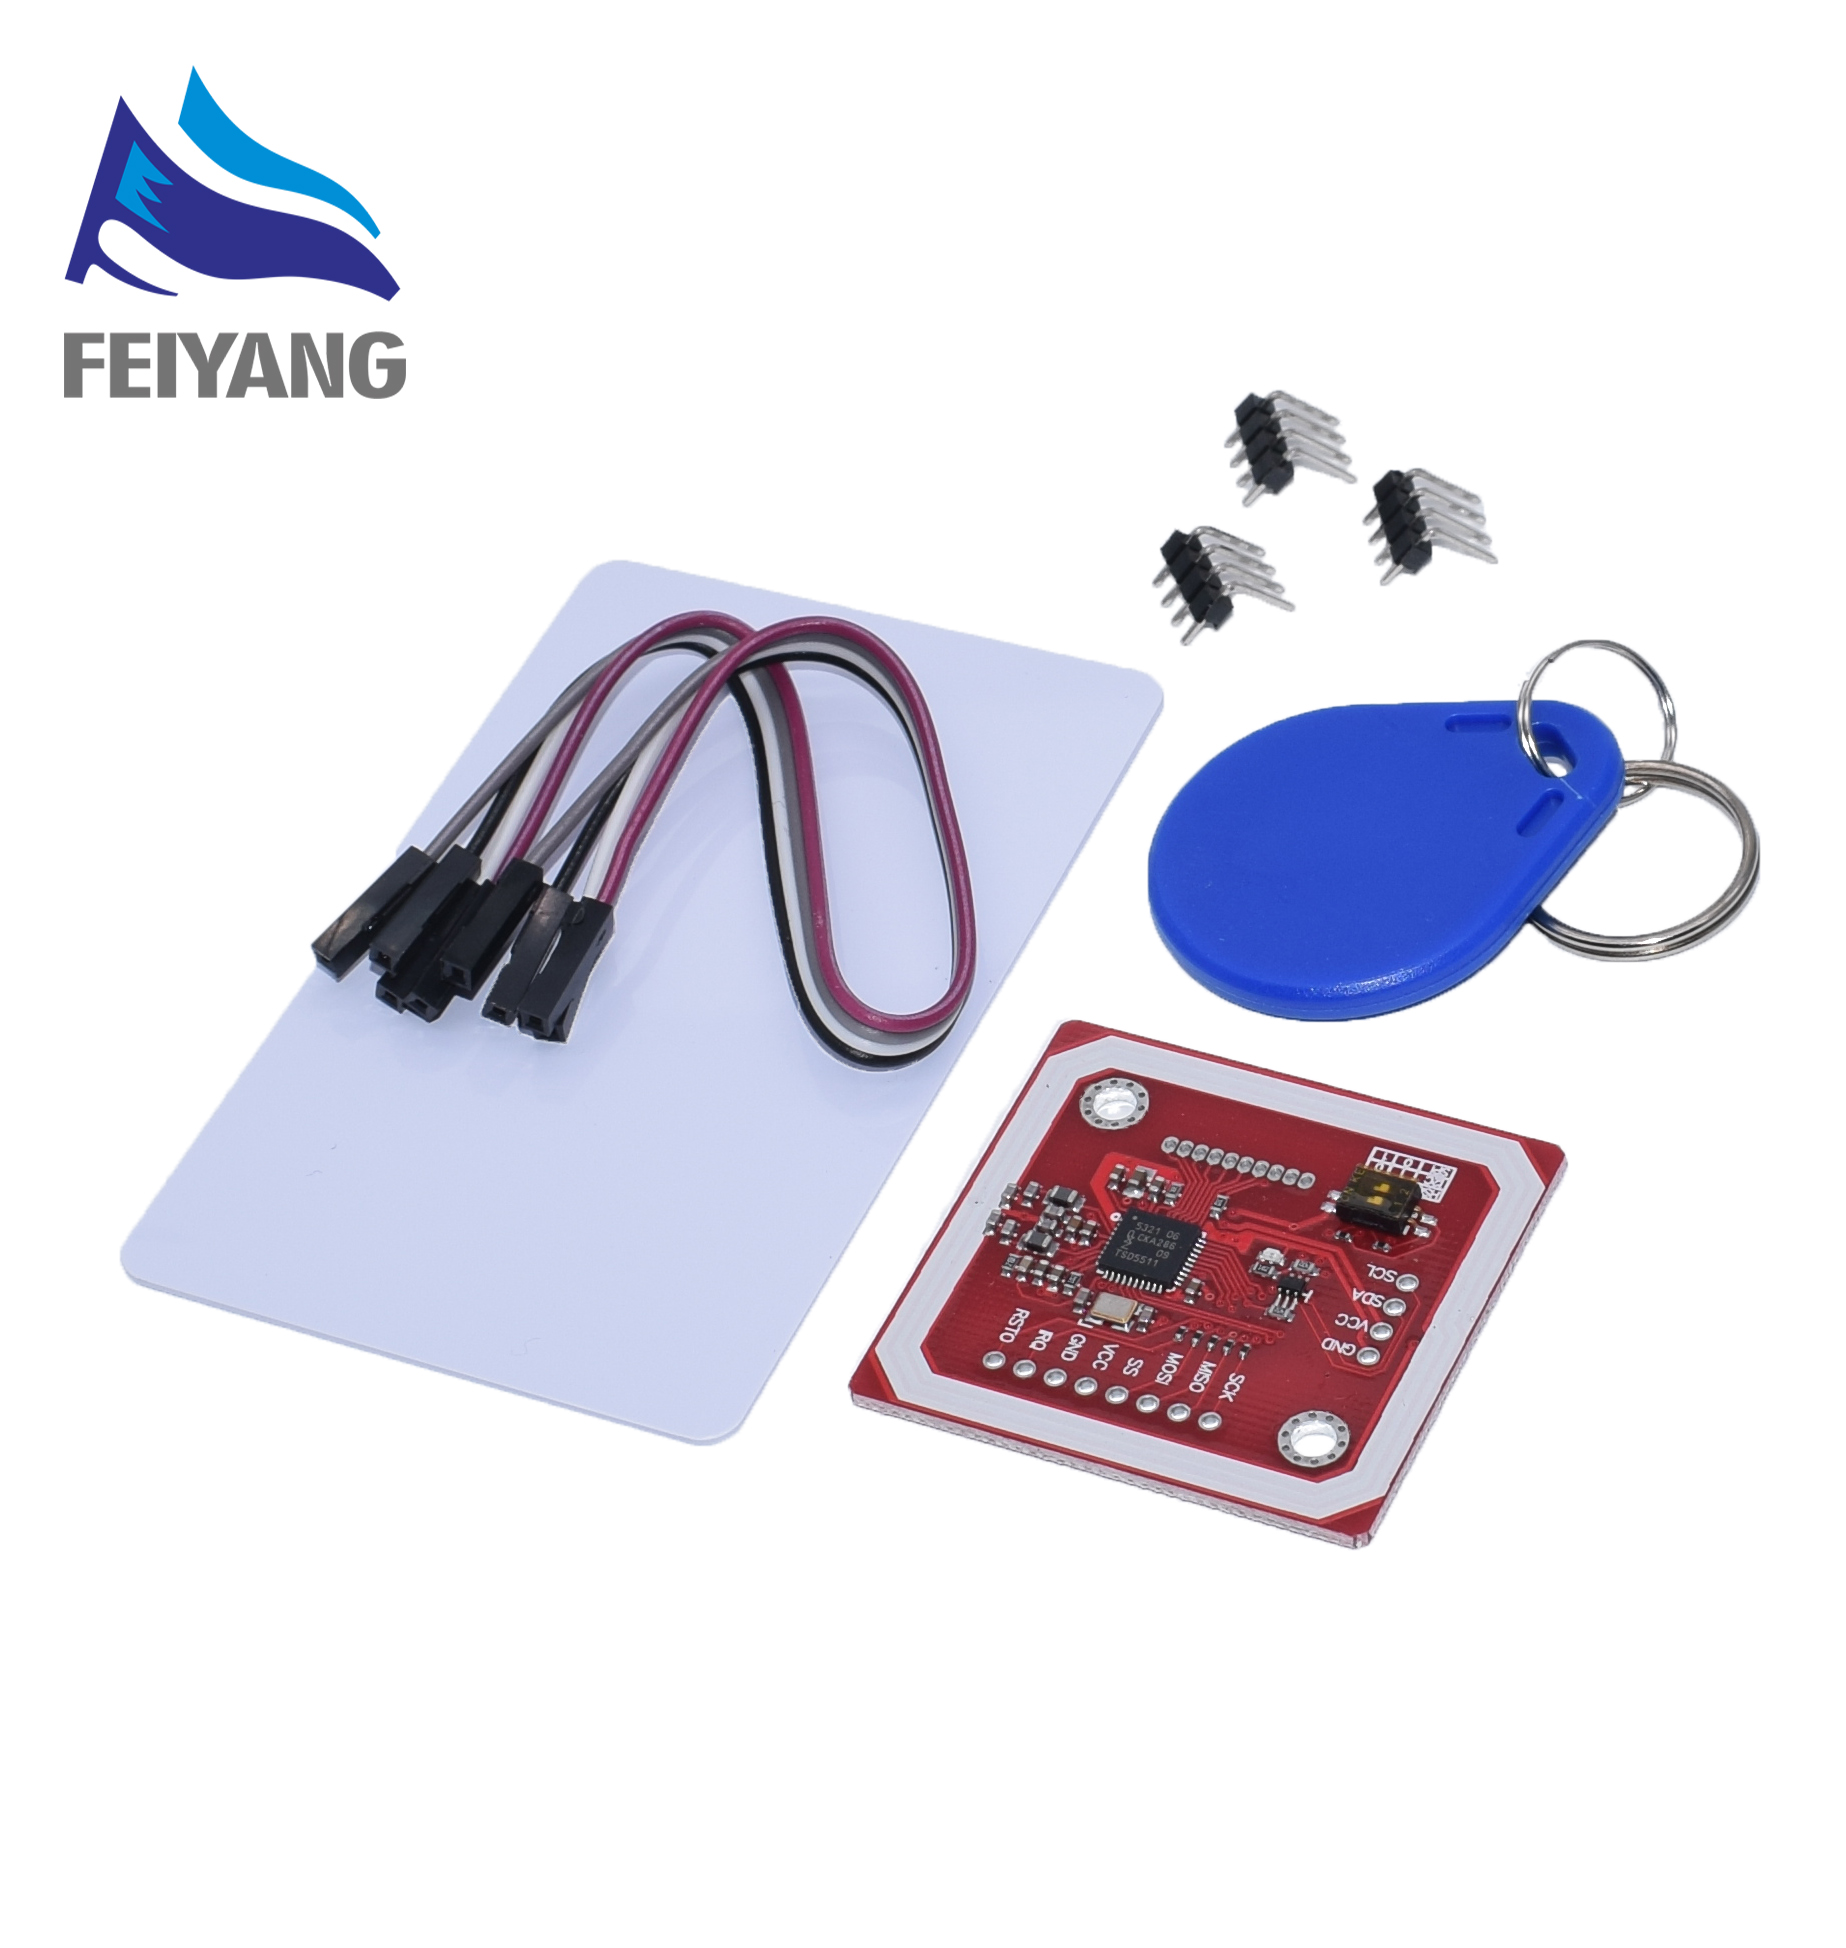 10Set PN532 NFC RFID Wireless Module V3 User Kits Reader Writer Mode IC S50 Card PCB Attenna I2C IIC SPI HSU10Set PN532 NFC RFID Wireless Module V3 User Kits Reader Writer Mode IC S50 Card PCB Attenna I2C IIC SPI HSU